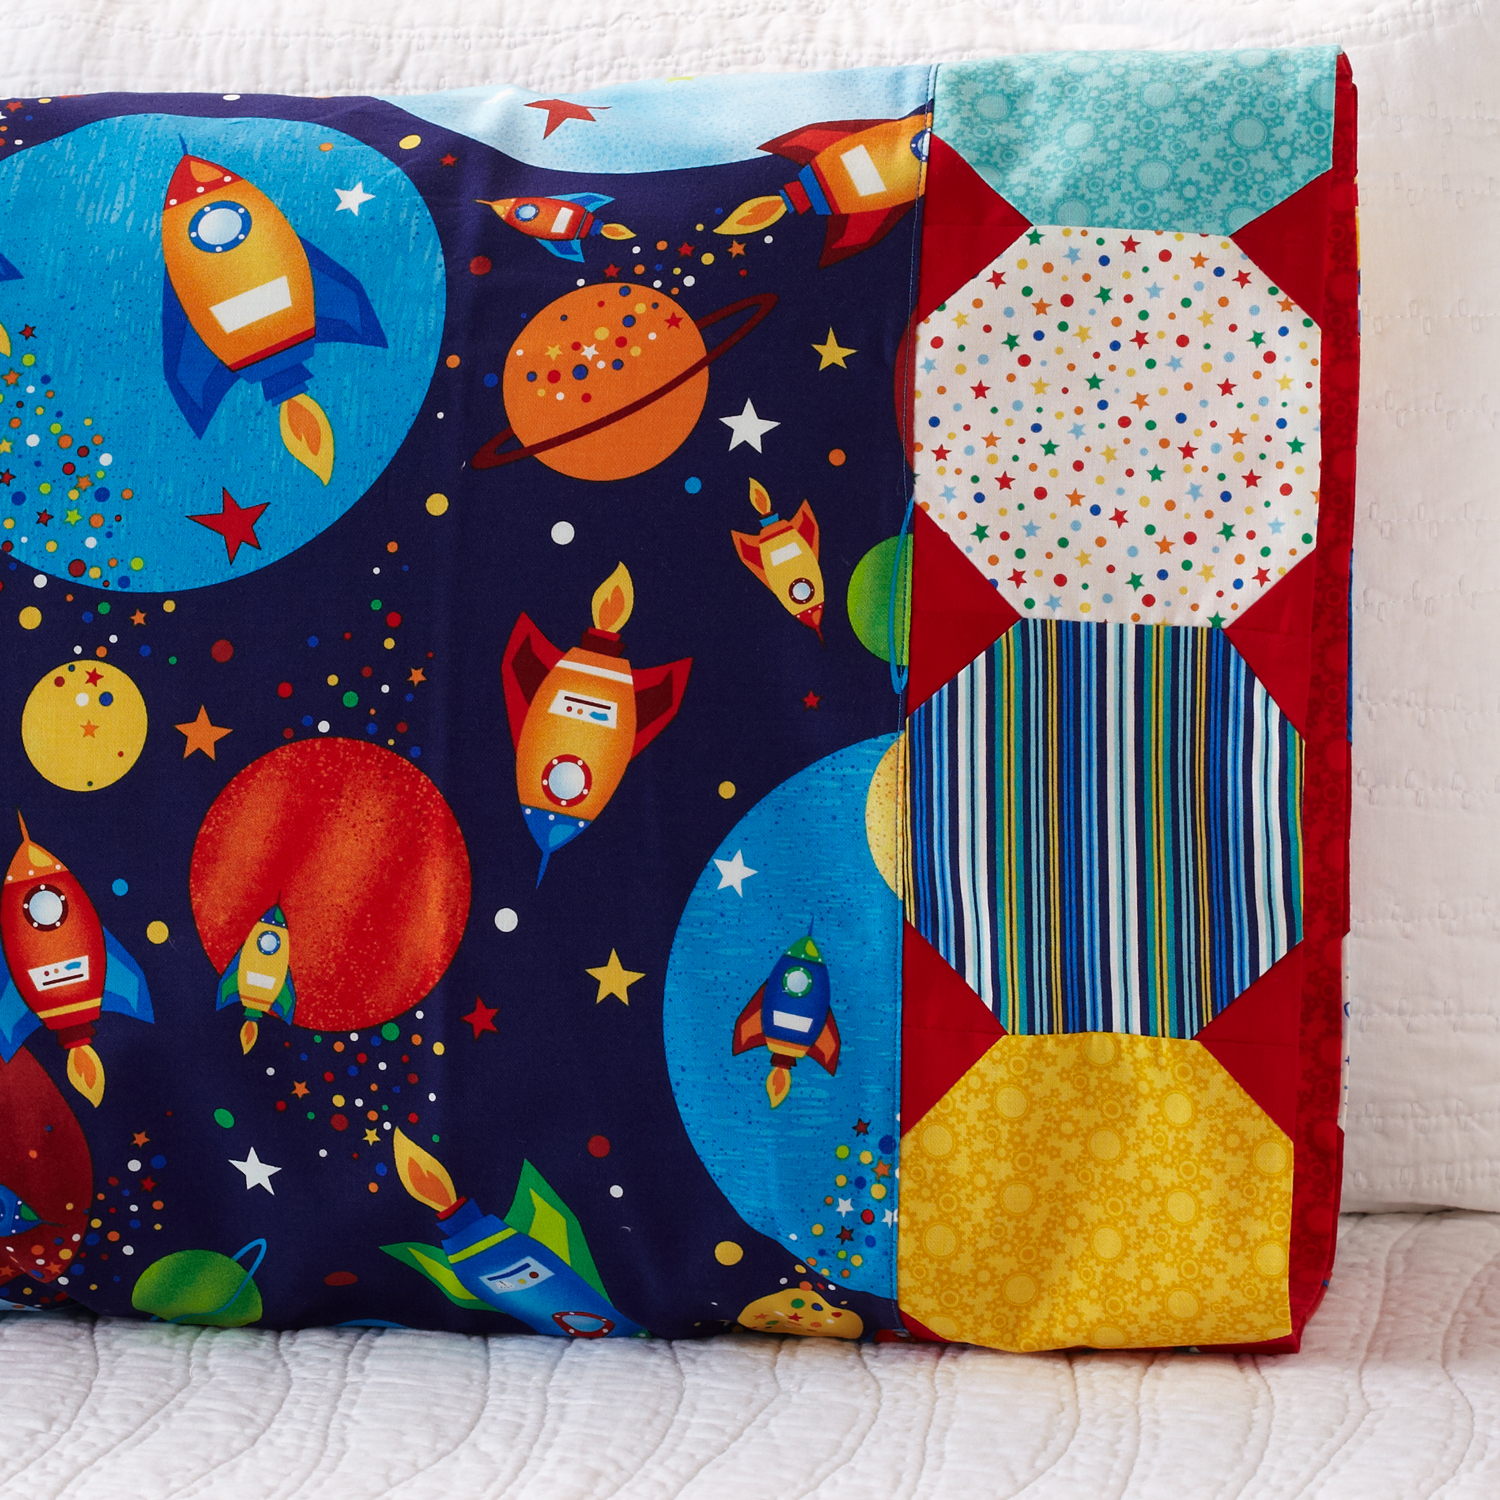 planet pillowcase with snowball band